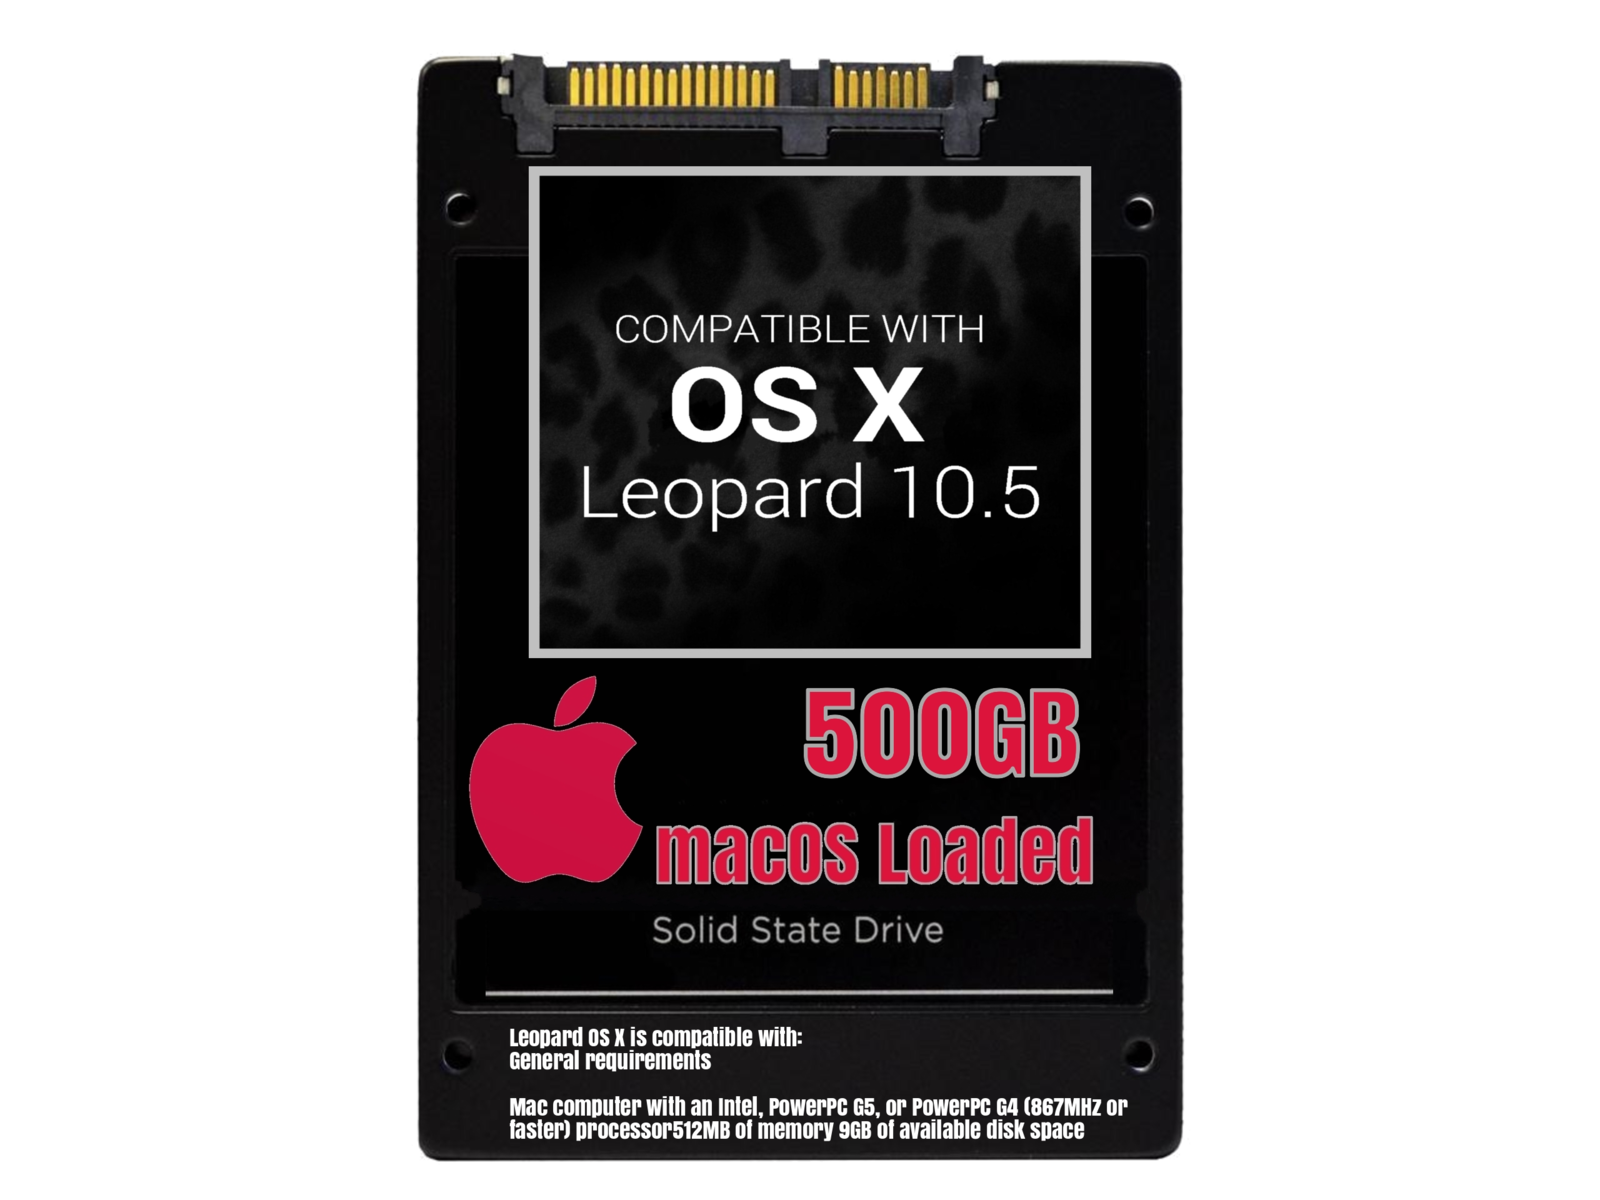 macOS Mac OS X 10.5 Leopard Preloaded on 500GB Solid State Drive - $99.99